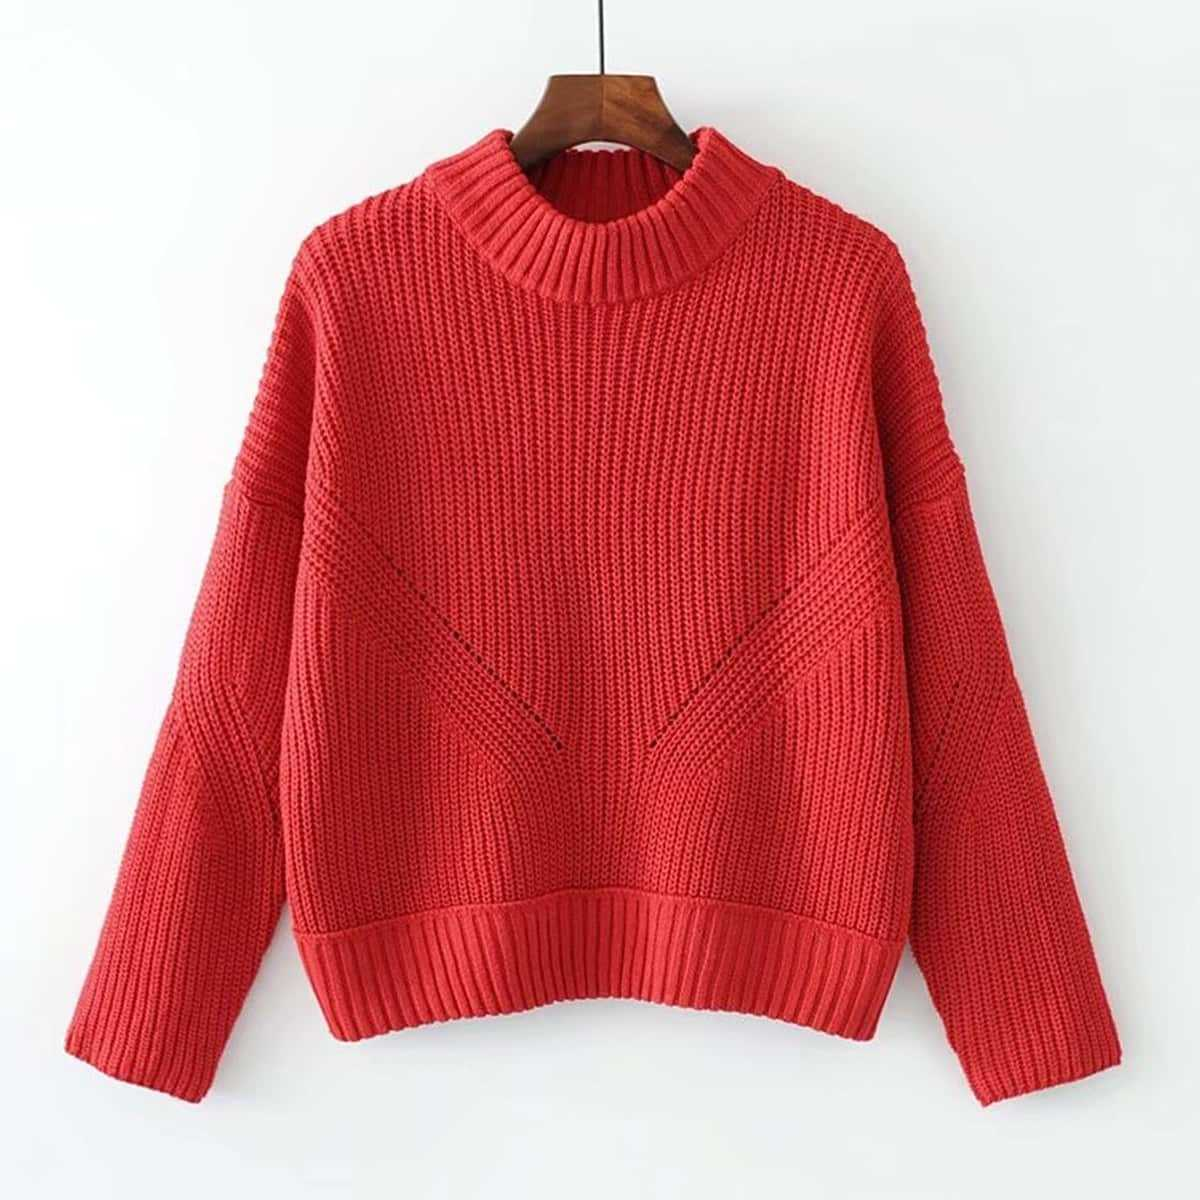 High Neck Ribbed Knit Sweater in Red by ROMWE on GOOFASH